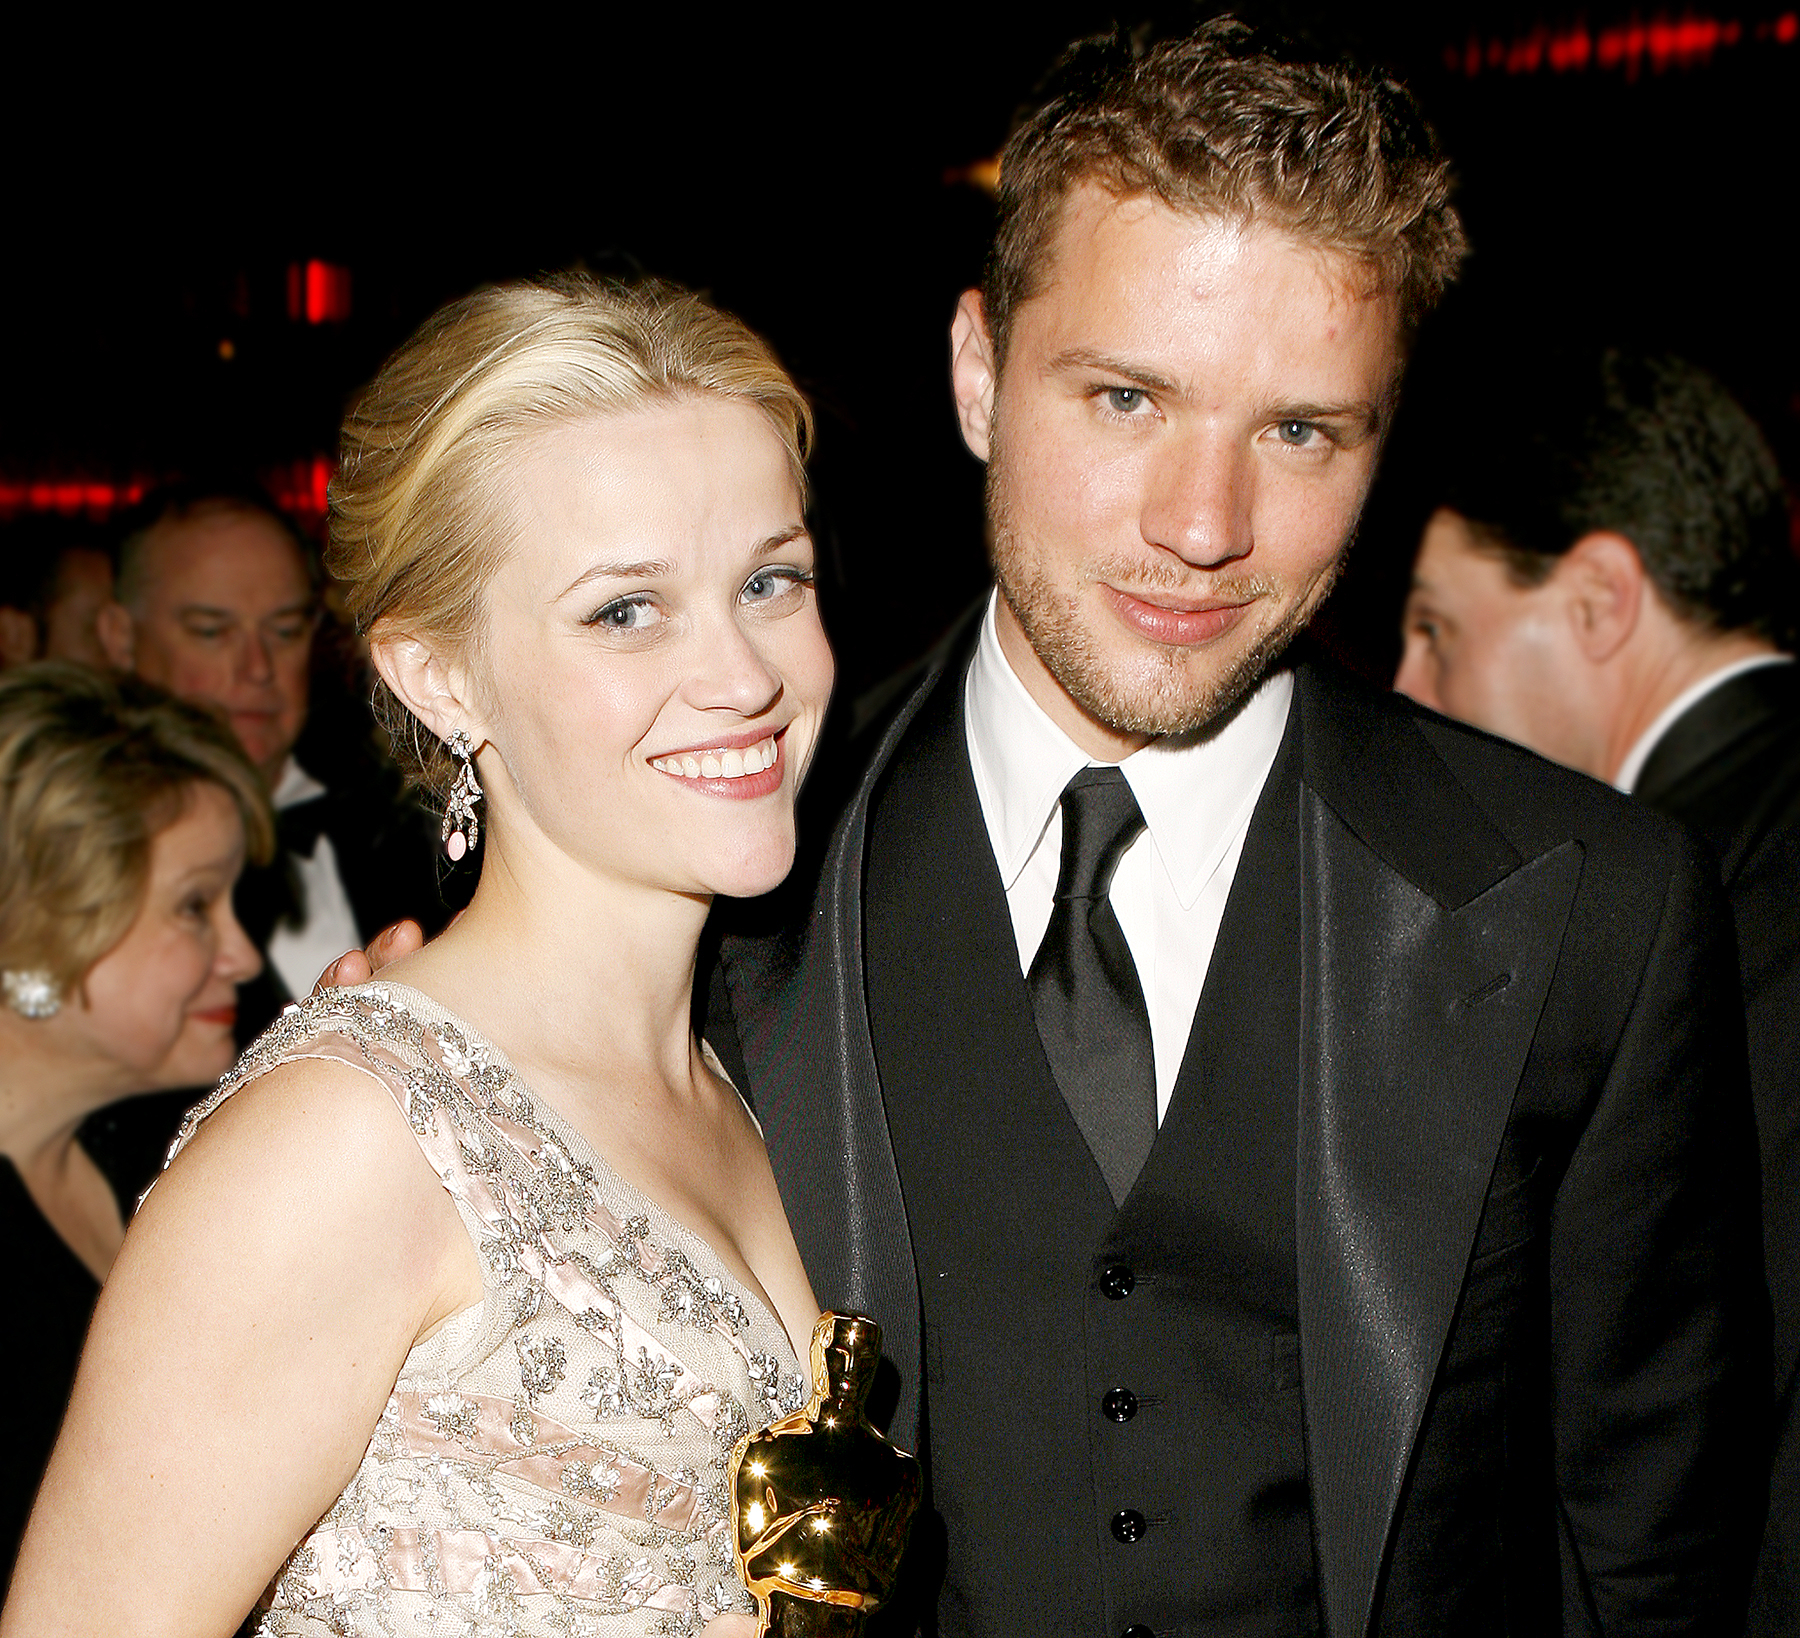 celebrity breakups Reese Witherspoon Ryan Phillippe